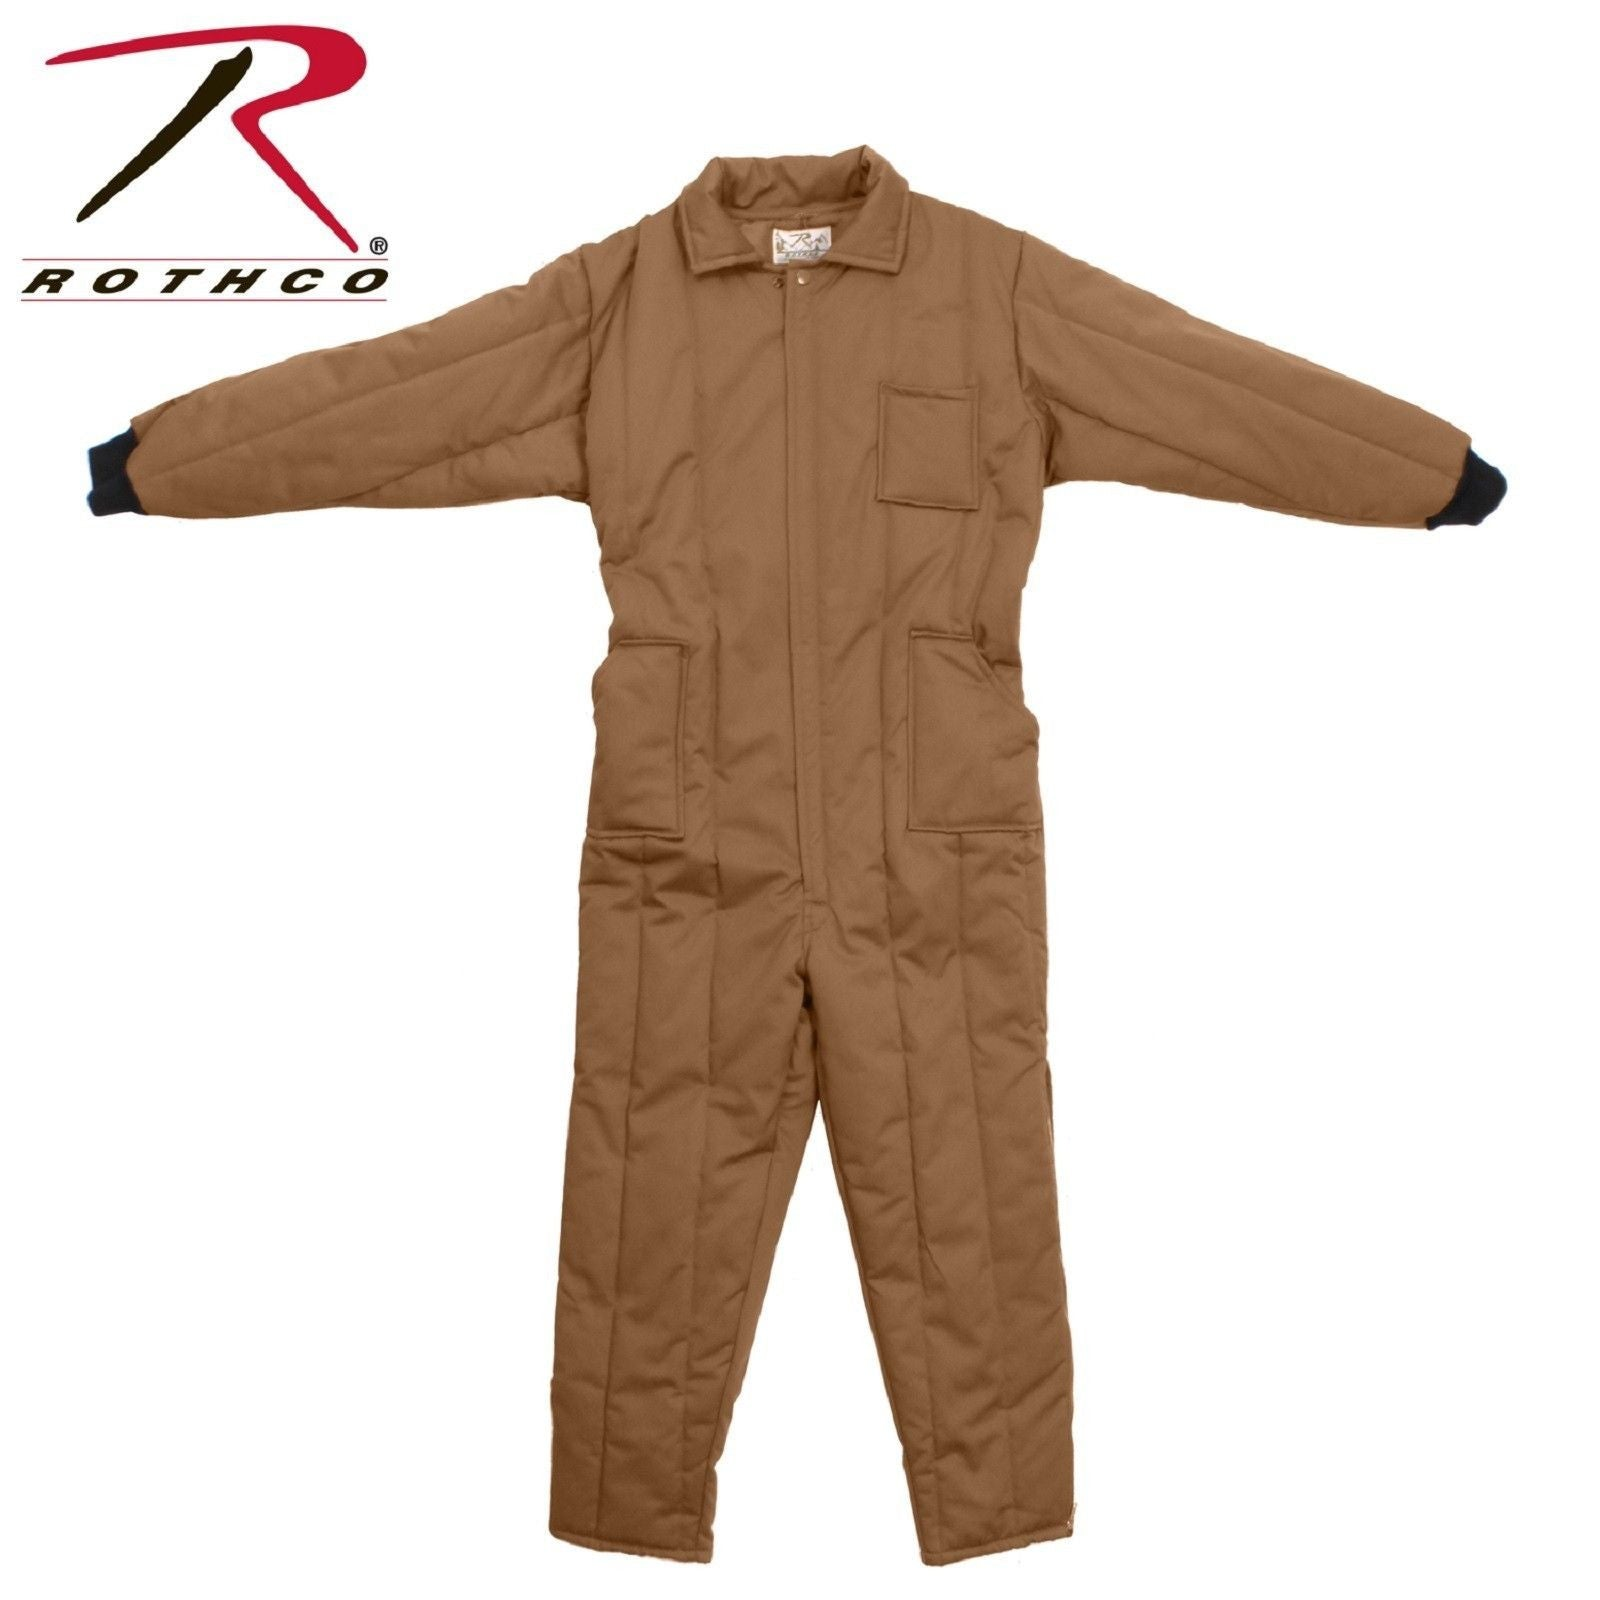 83cd0c103676e ... Coyote Brown Insulated Snowsuit Coverall - Rothco Full Zipper Winter  Snow Suit